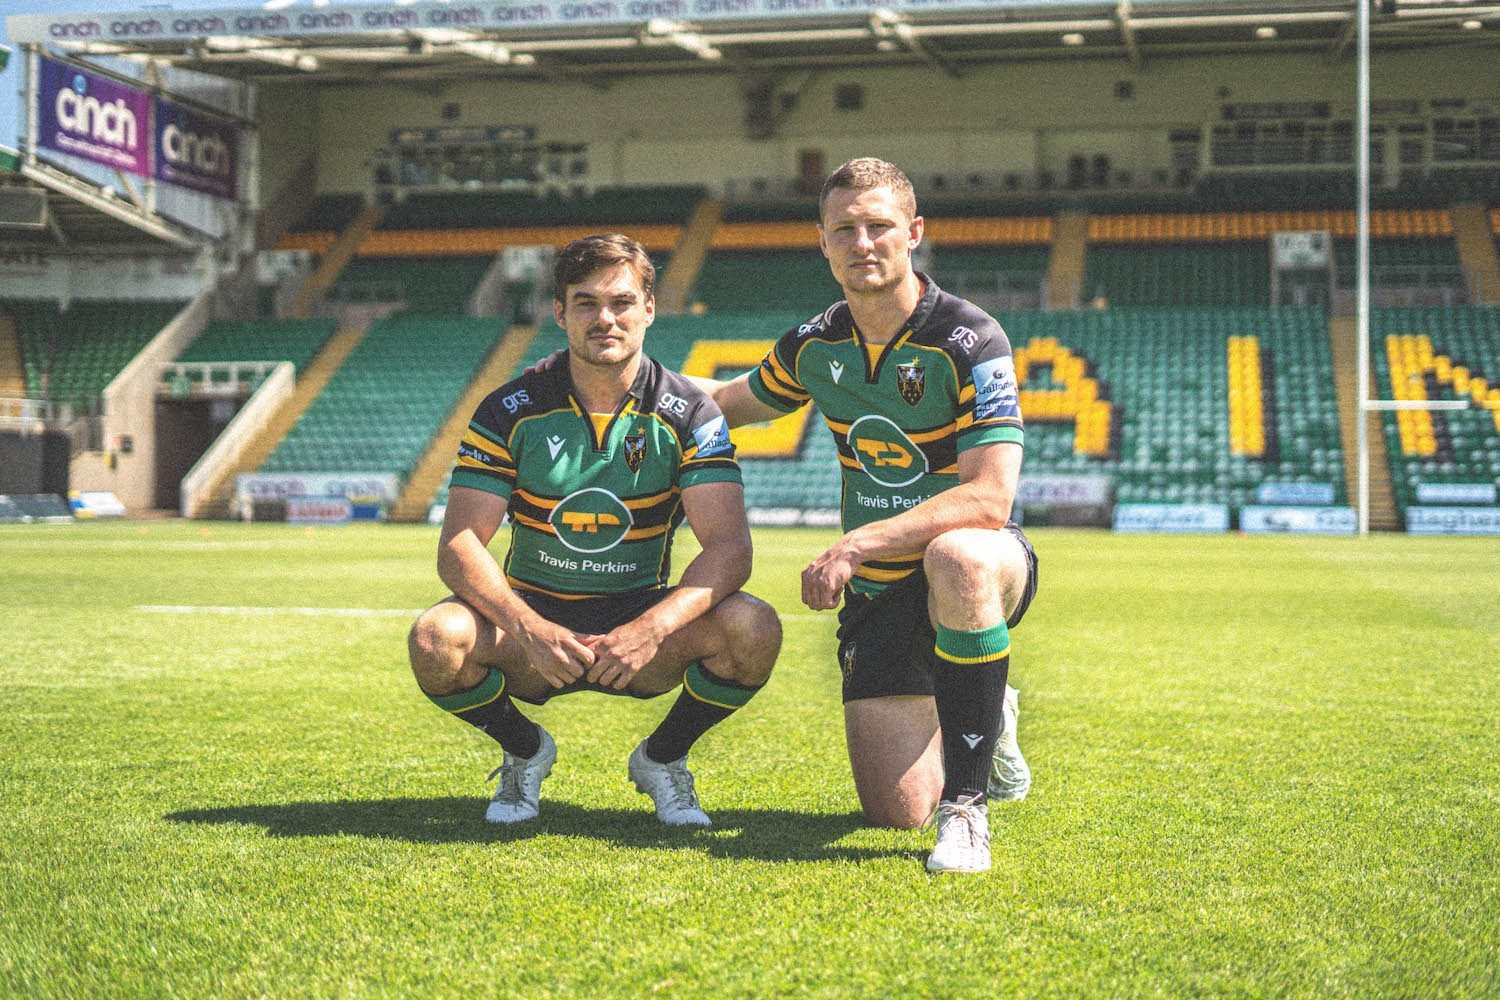 Saints' new home strip pays homage to the winner of the 'King of the Kits' poll